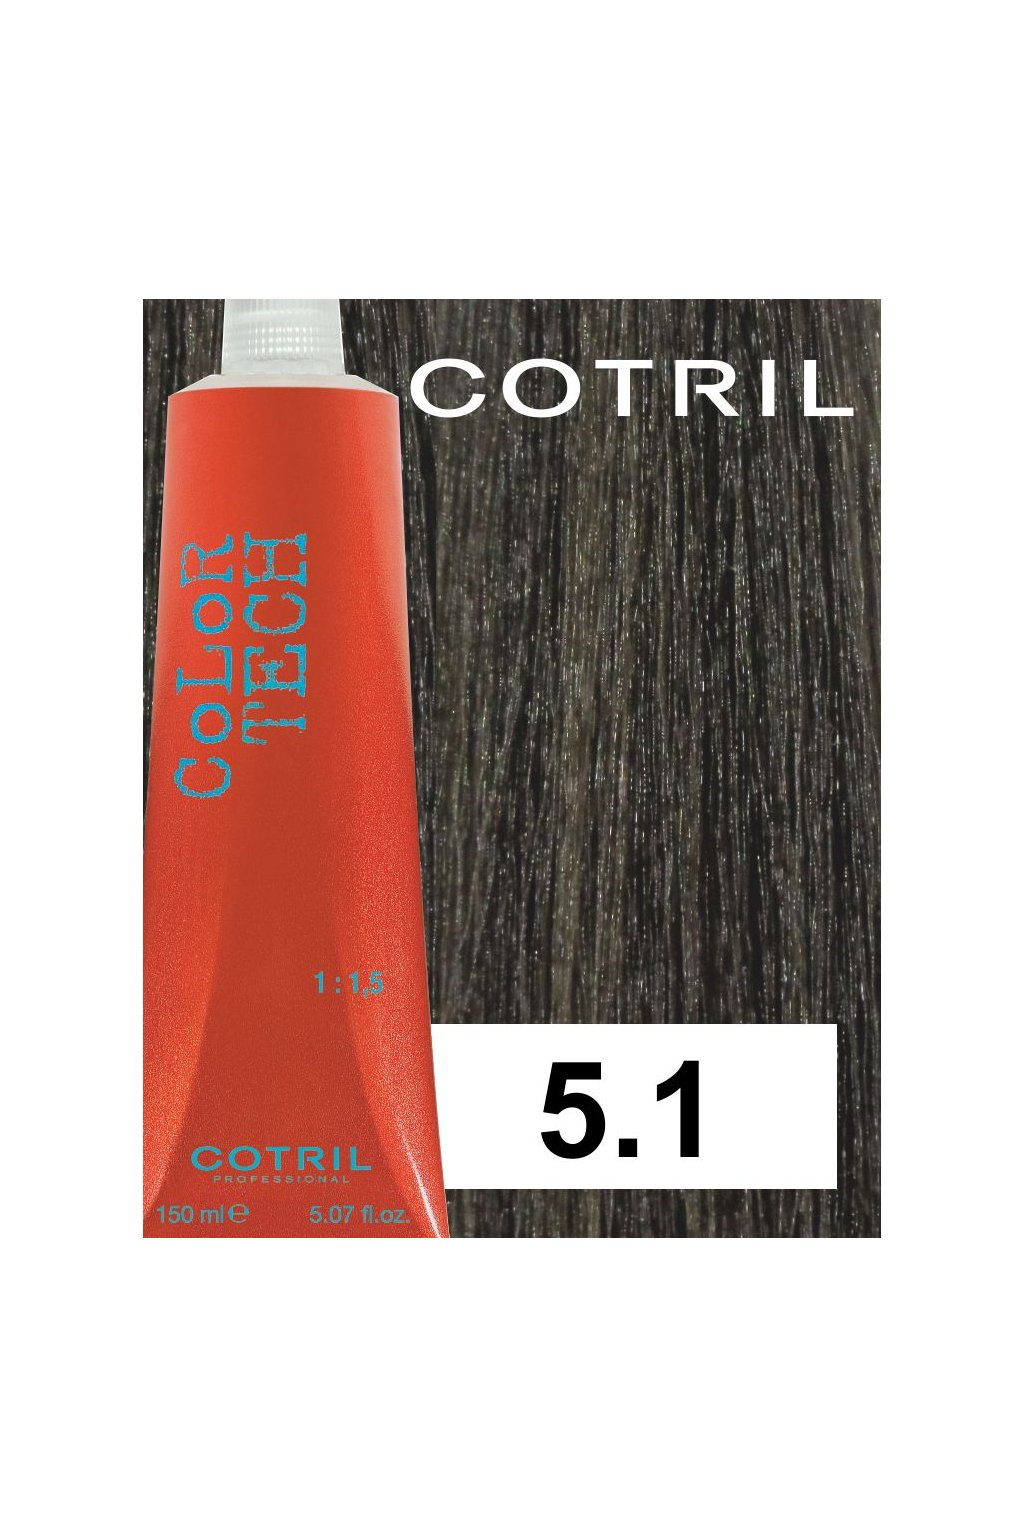 5 1 ct cotril